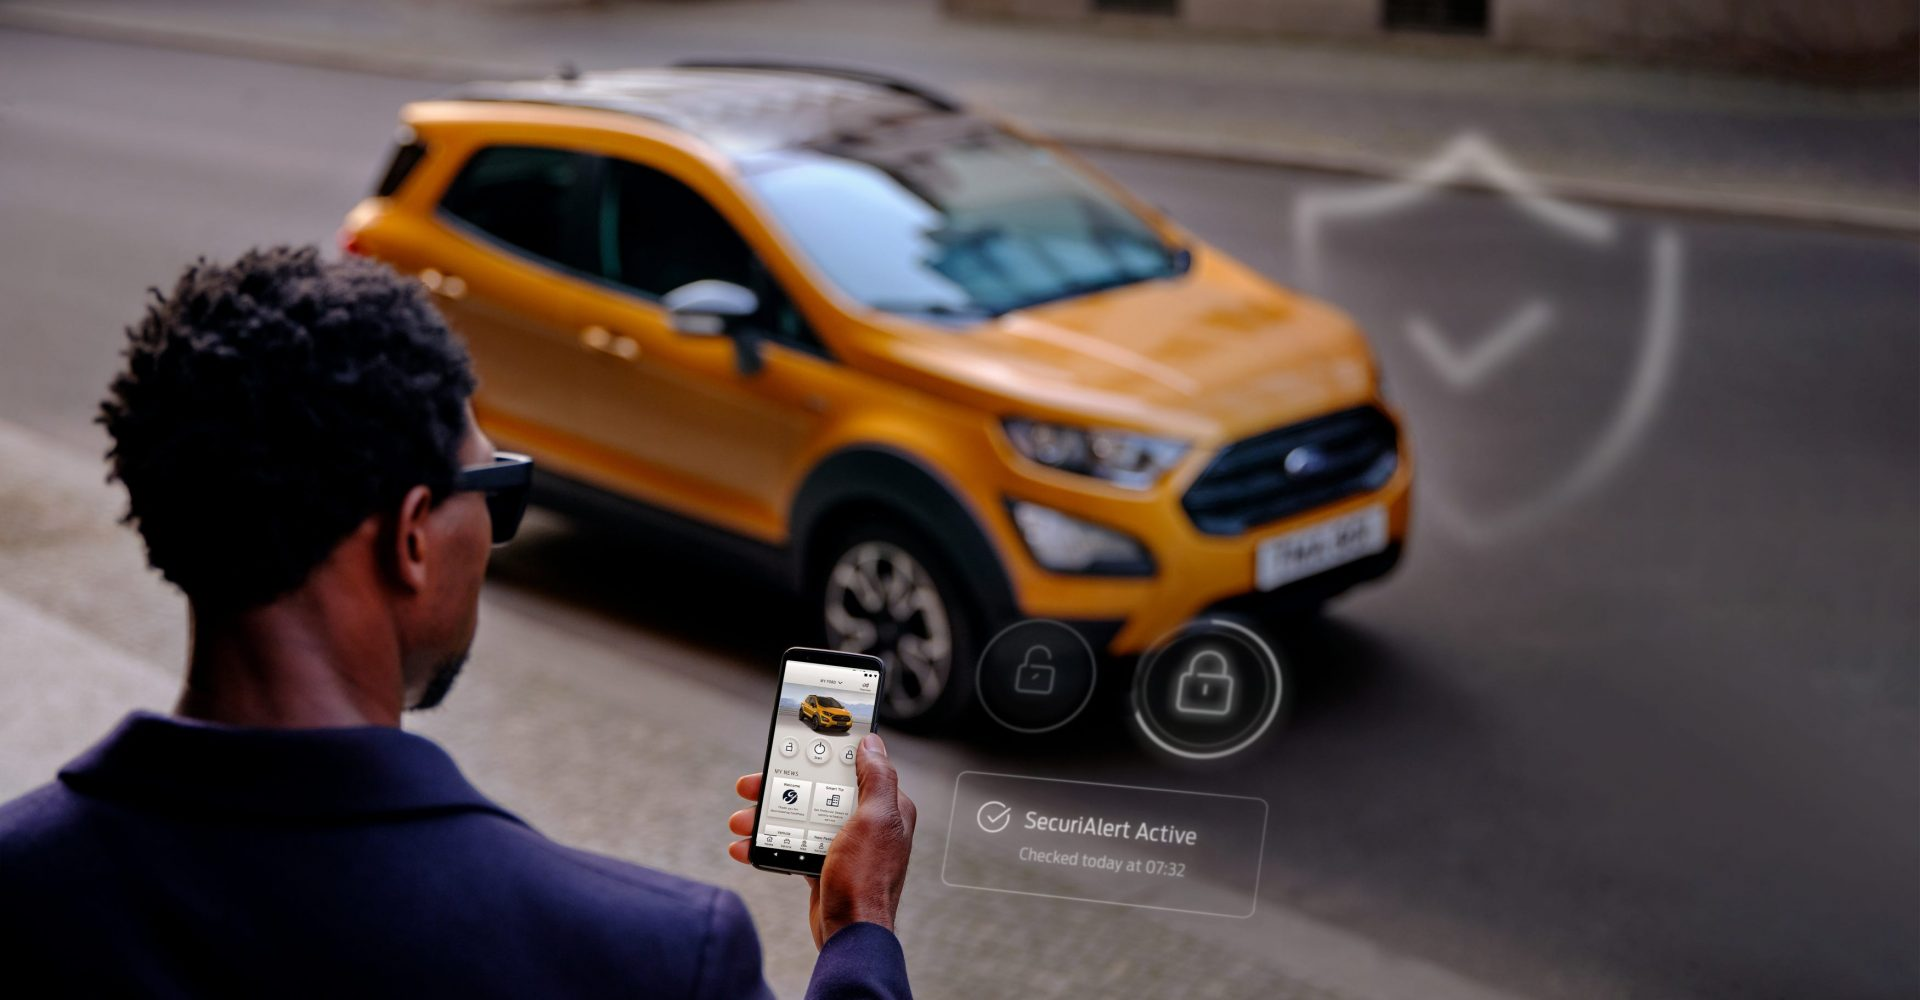 Ford's smartphone system can alert a car owner if their vehicle is being broken into